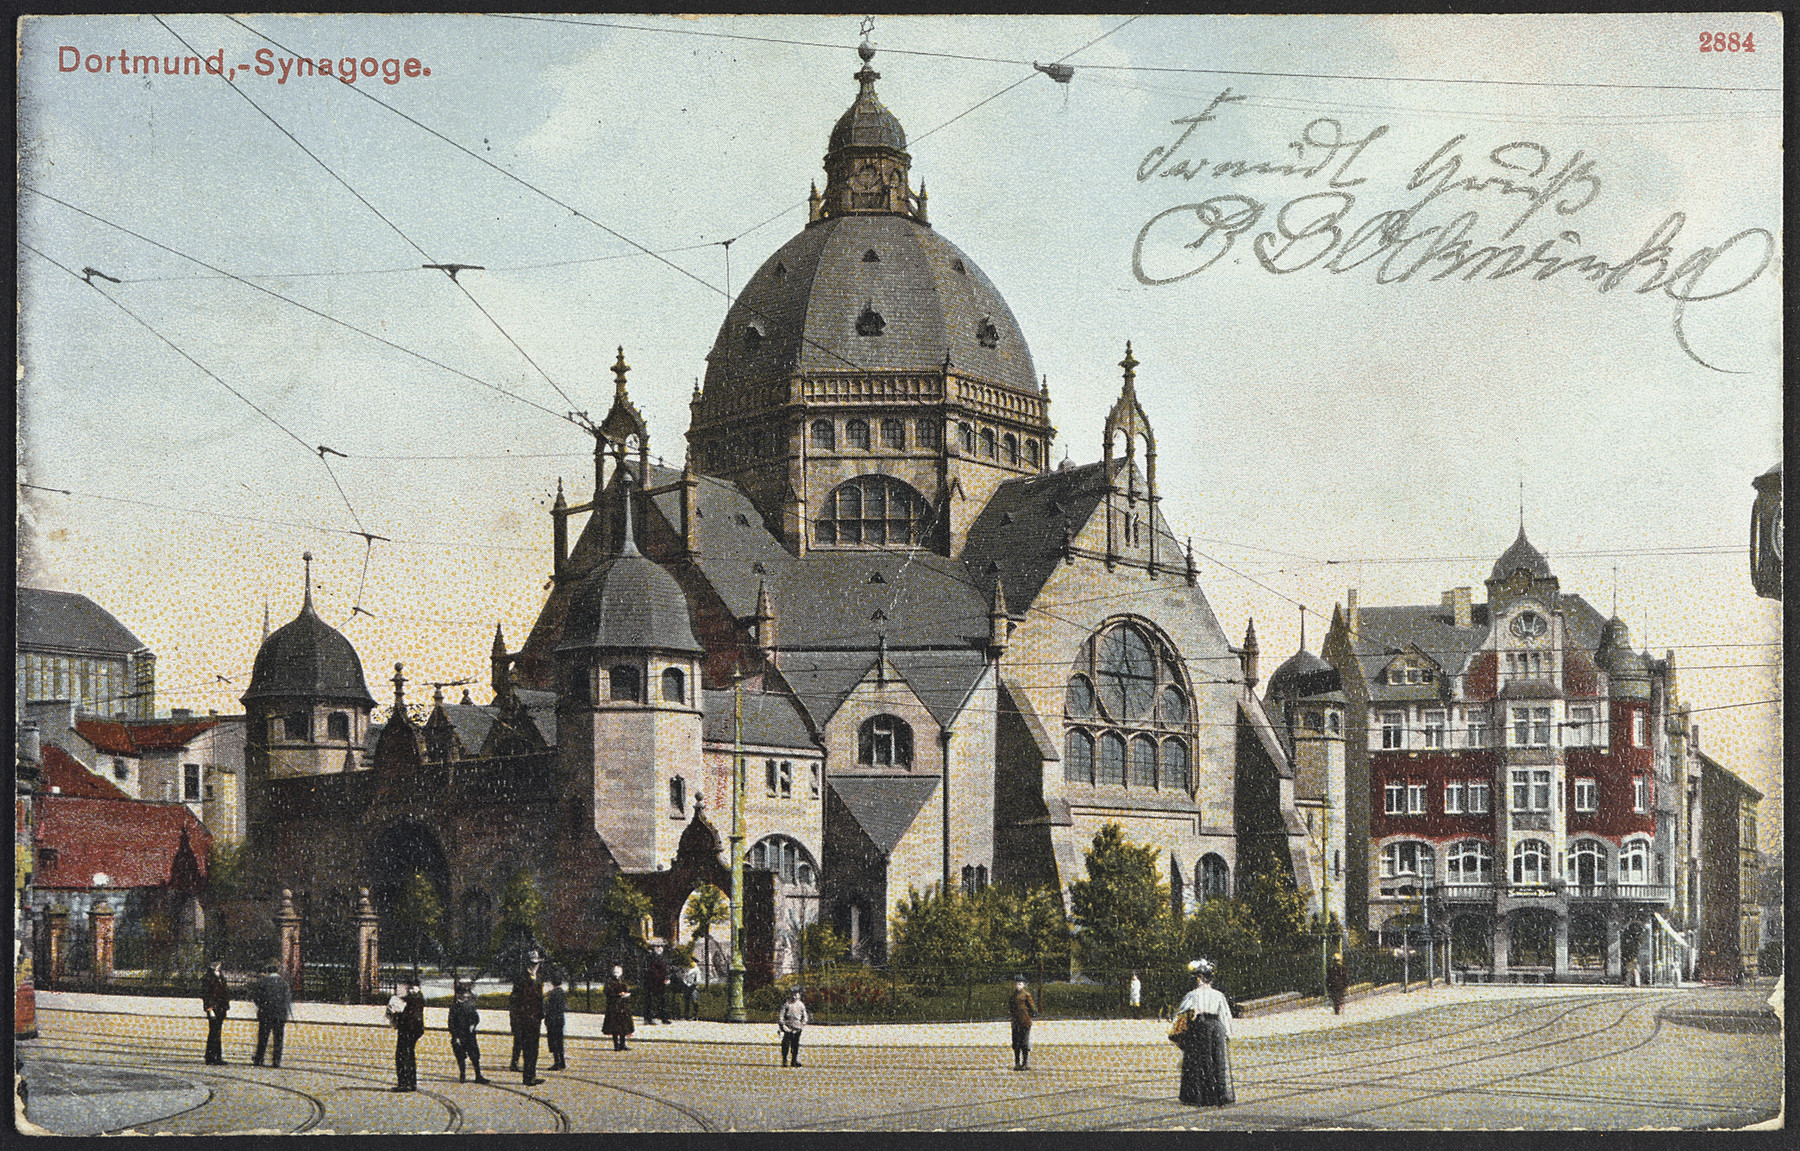 Picture postcard showing an exterior view of the synagogue in Dortmund, Germany.